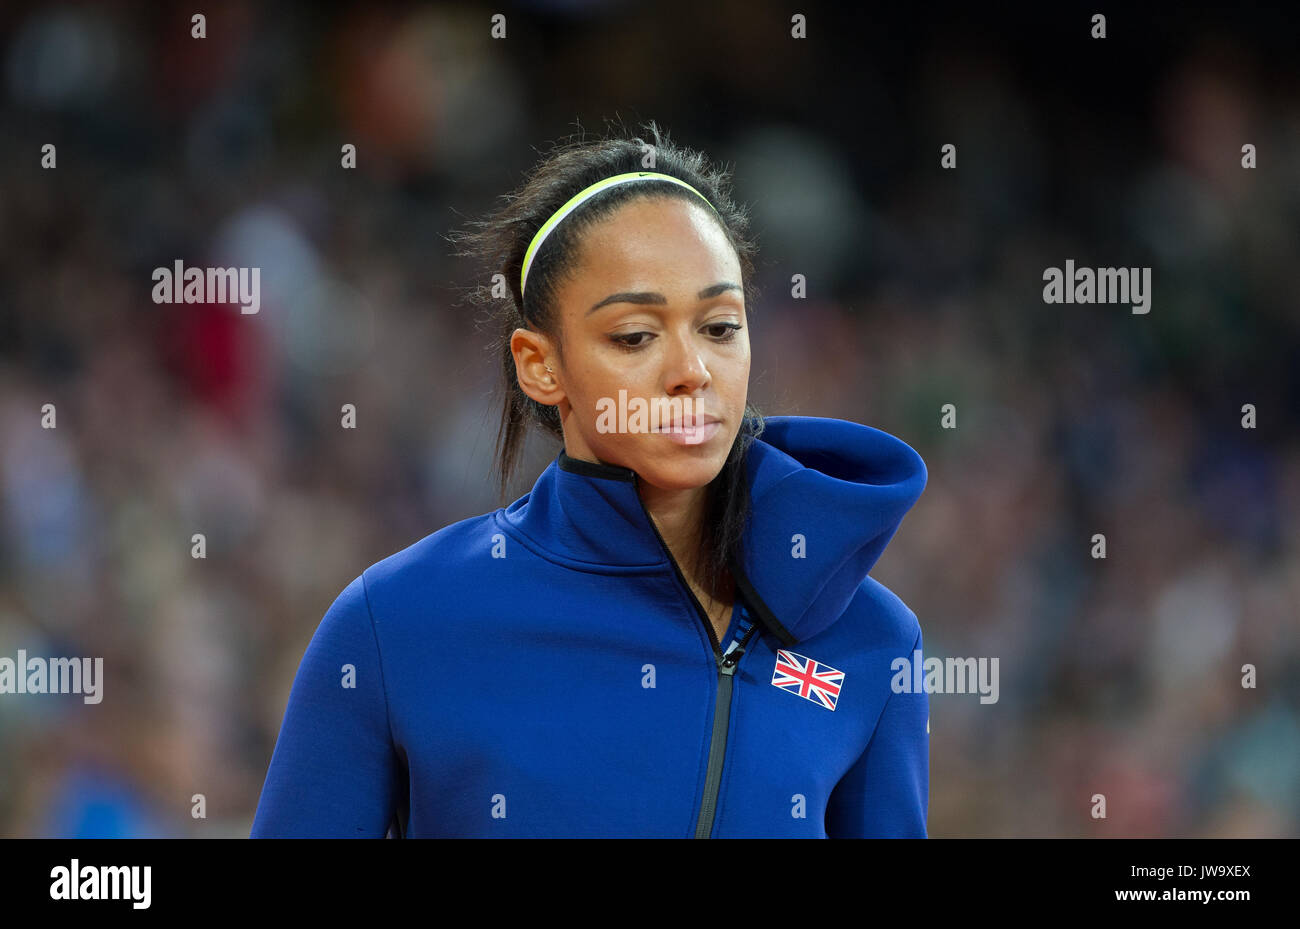 Katarina Johnson-Thompson of GBR in the high jump during the IAAF World Athletics Championships 2017 - Day 7 at the Olympic Park, London, England on 1 - Stock Image